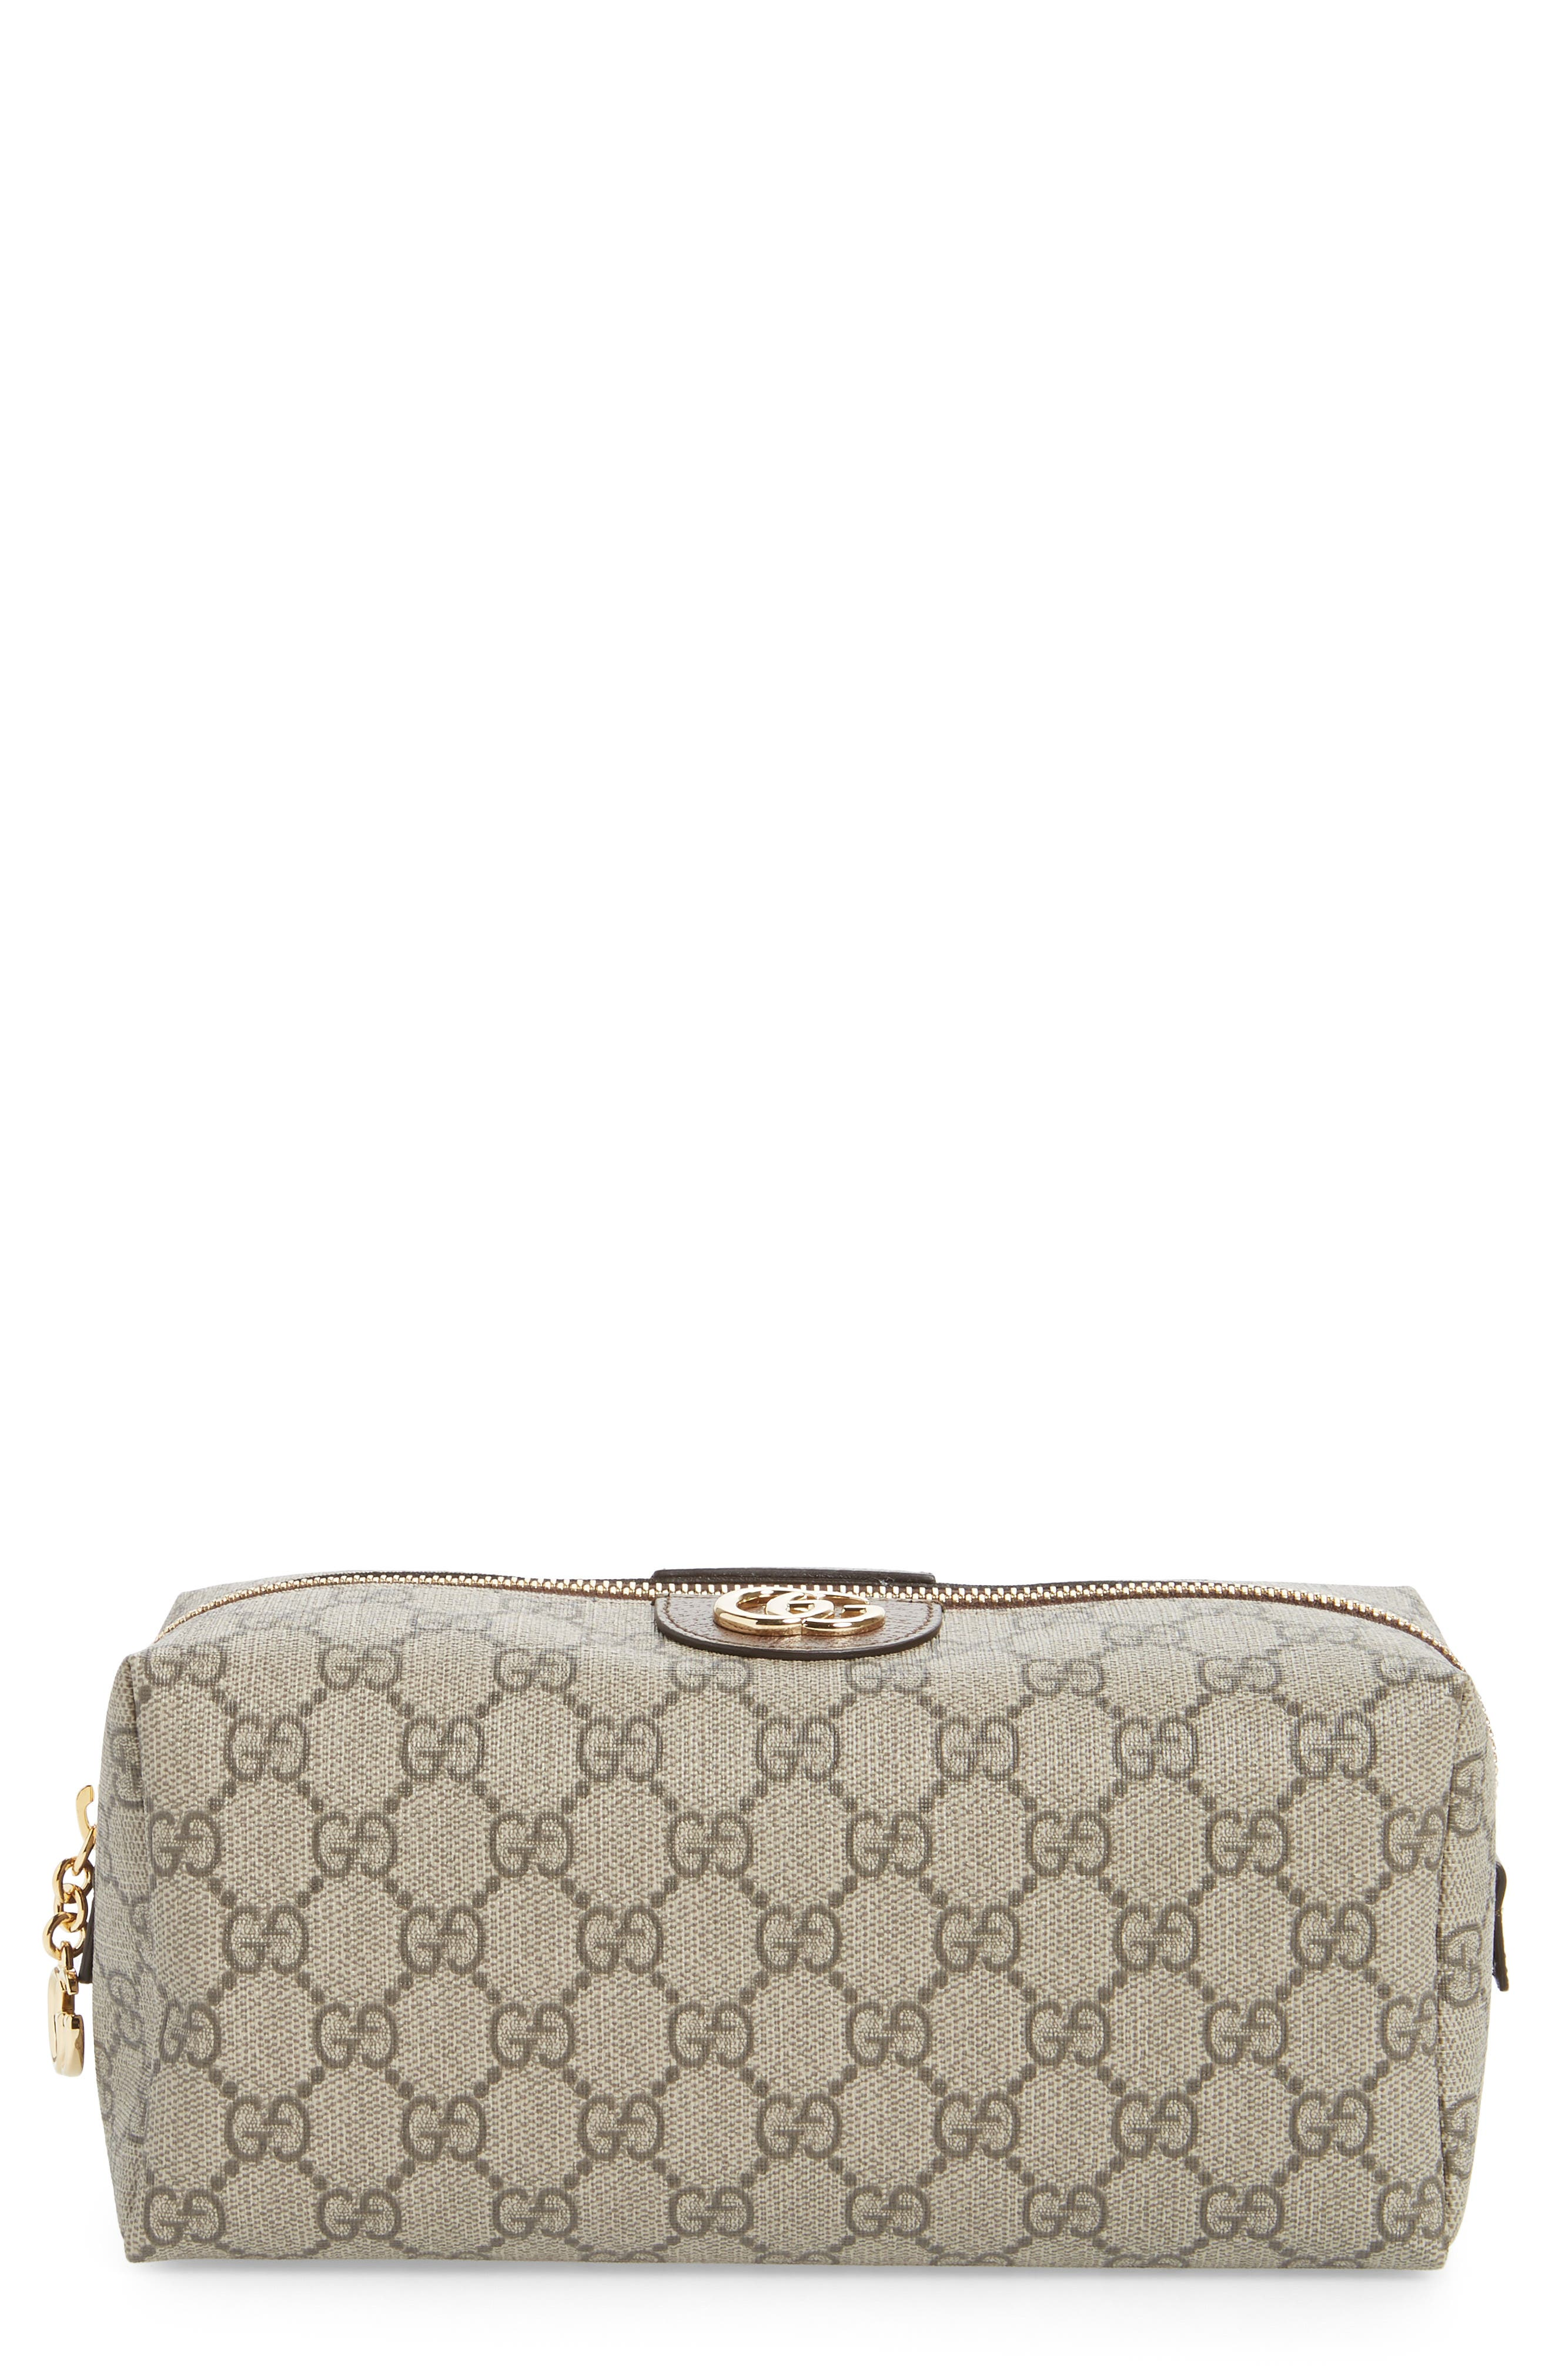 5c08228e8449 Gucci Luggage & Travel Bags | Nordstrom